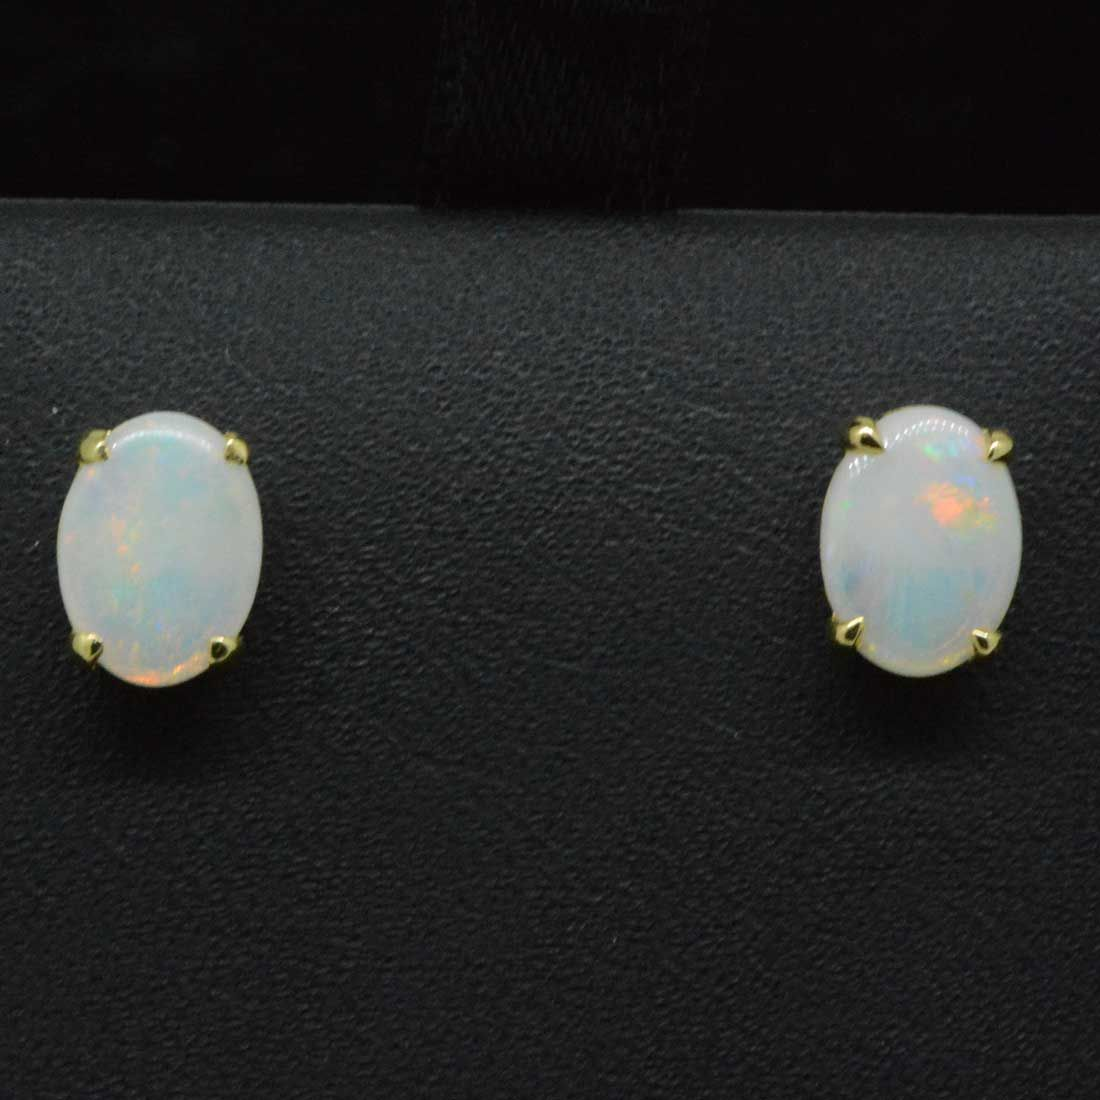 Solid opal earrings set in 14ct yellow gold 8x6